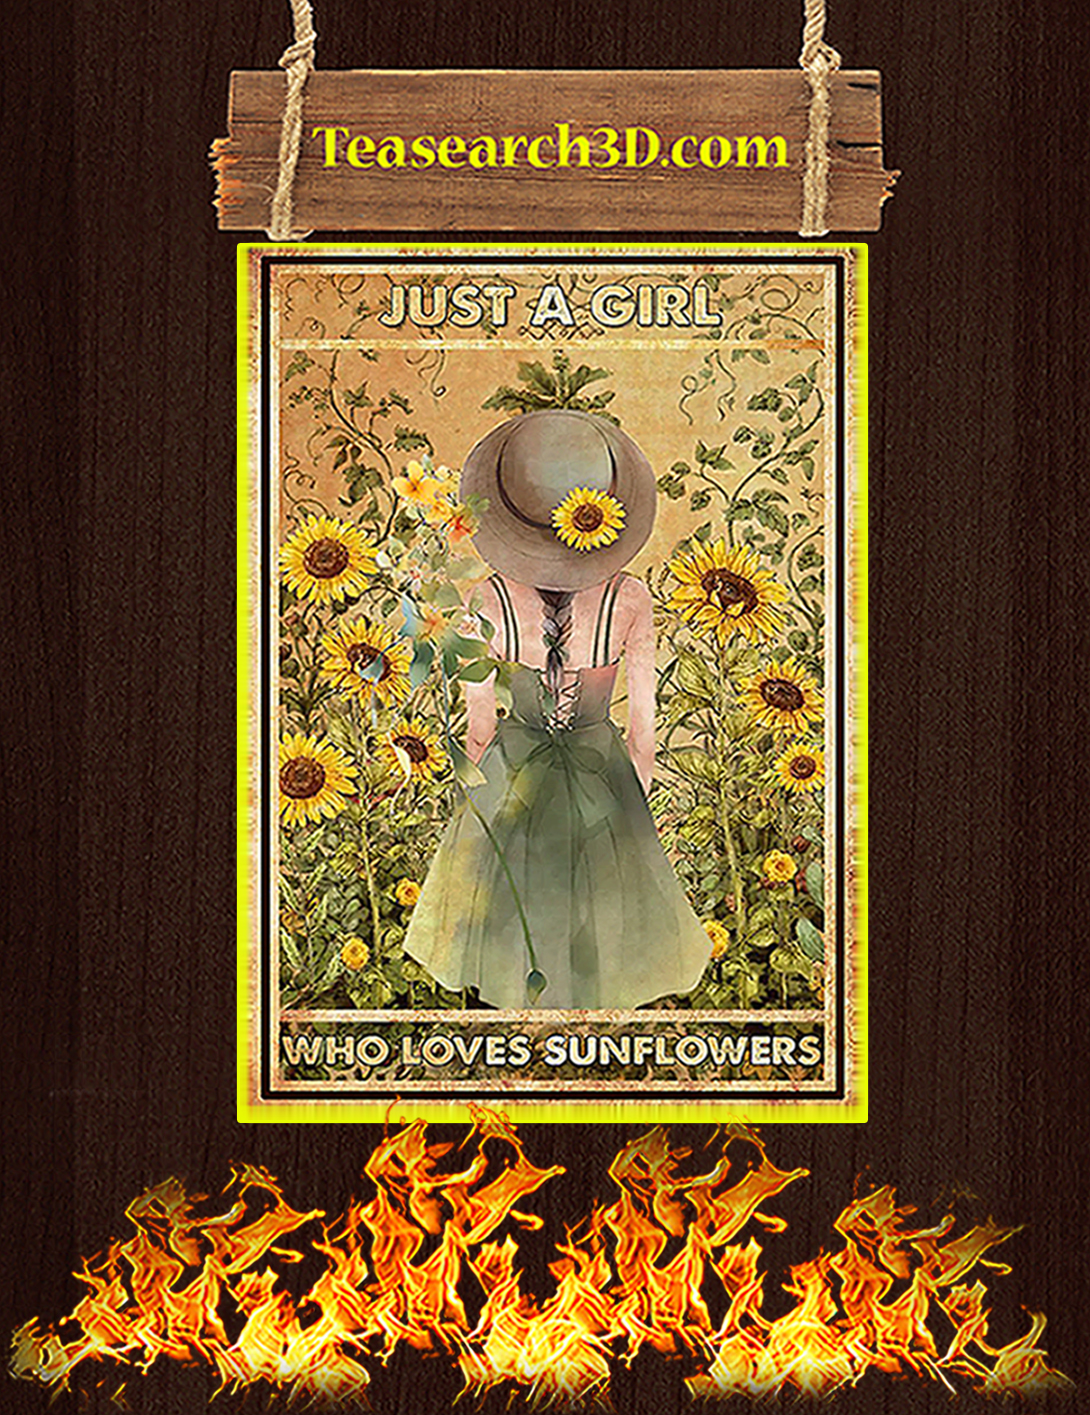 Just a girl who loves sunflowers poster A2